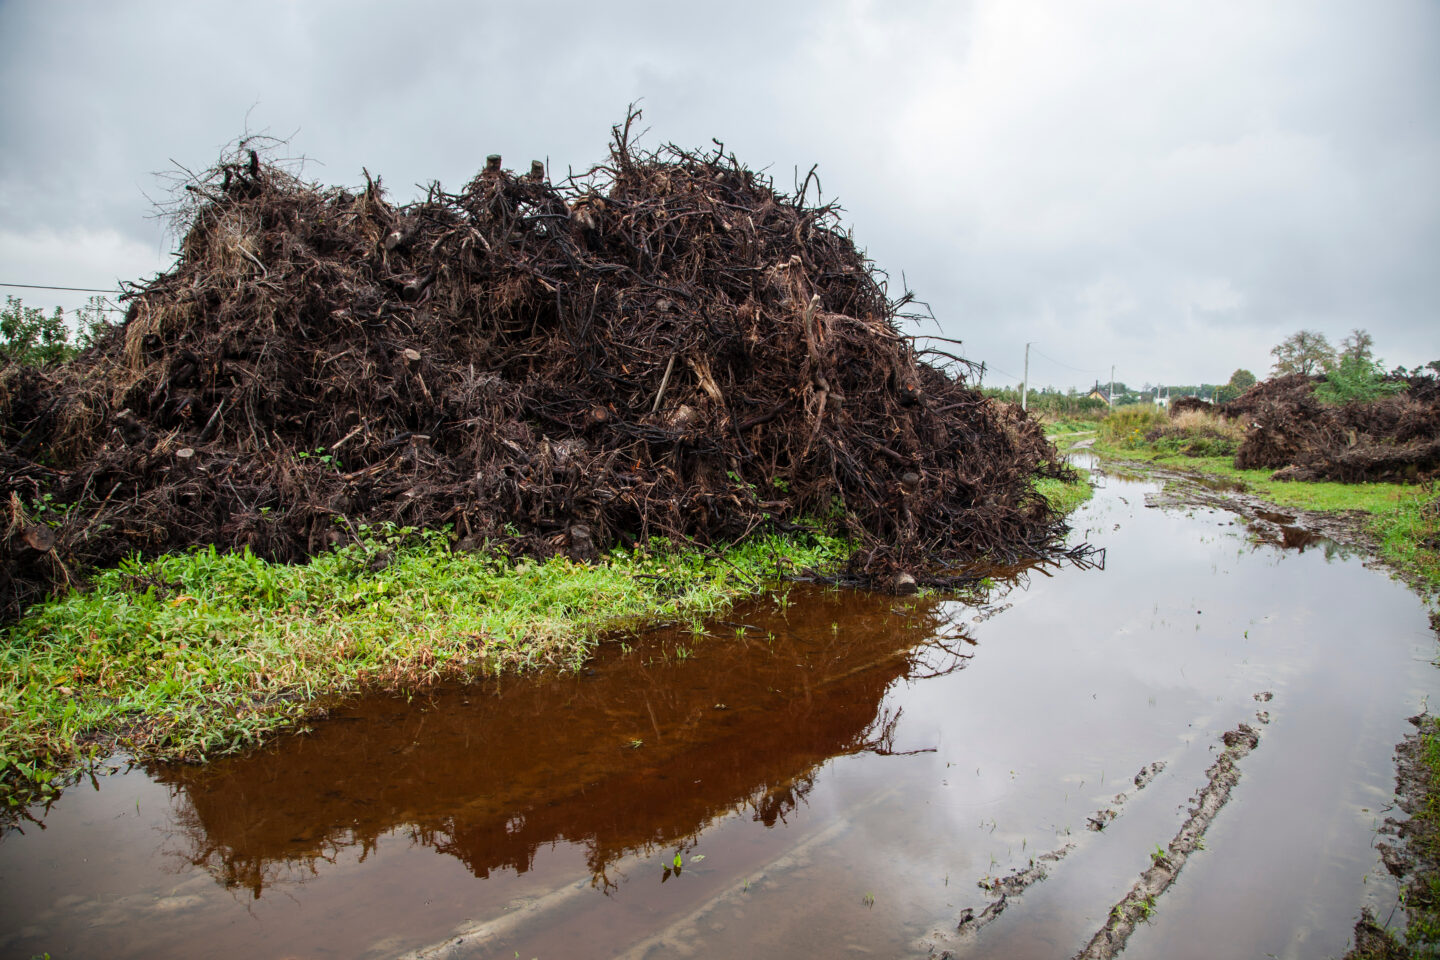 UNITARY GNAWING; SEVEN CONSIDERATIONS FOR THE CONSTITUENTS OF RHIZOPOLIS